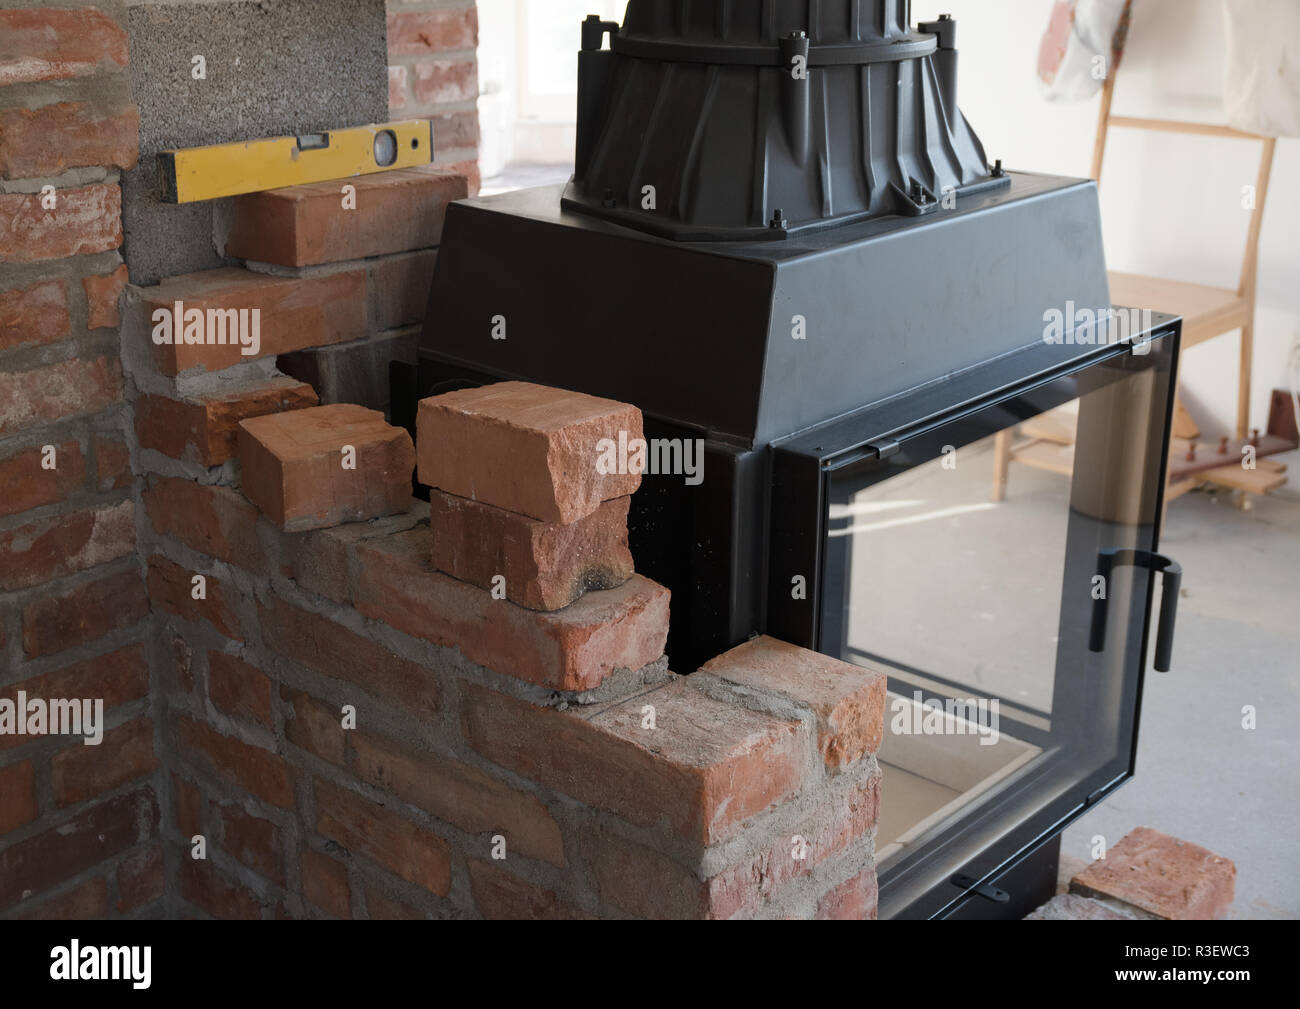 Surprising Brick Wall Border For A Wood Burning Stove Or Fireplace Download Free Architecture Designs Salvmadebymaigaardcom